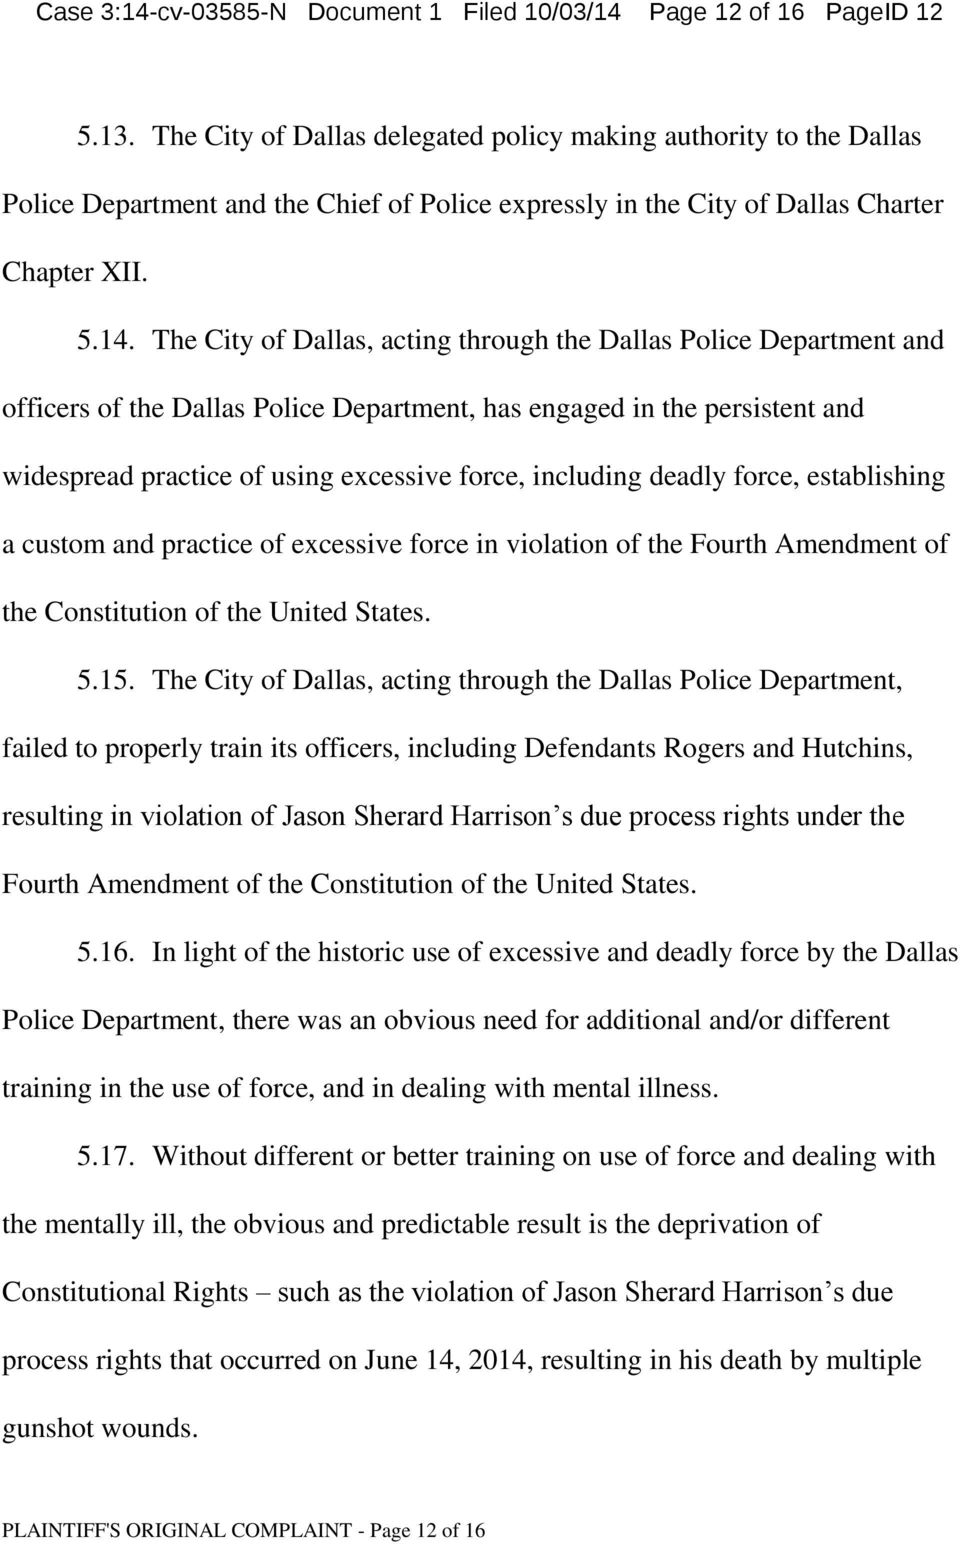 The City of Dallas, acting through the Dallas Police Department and officers of the Dallas Police Department, has engaged in the persistent and widespread practice of using excessive force, including